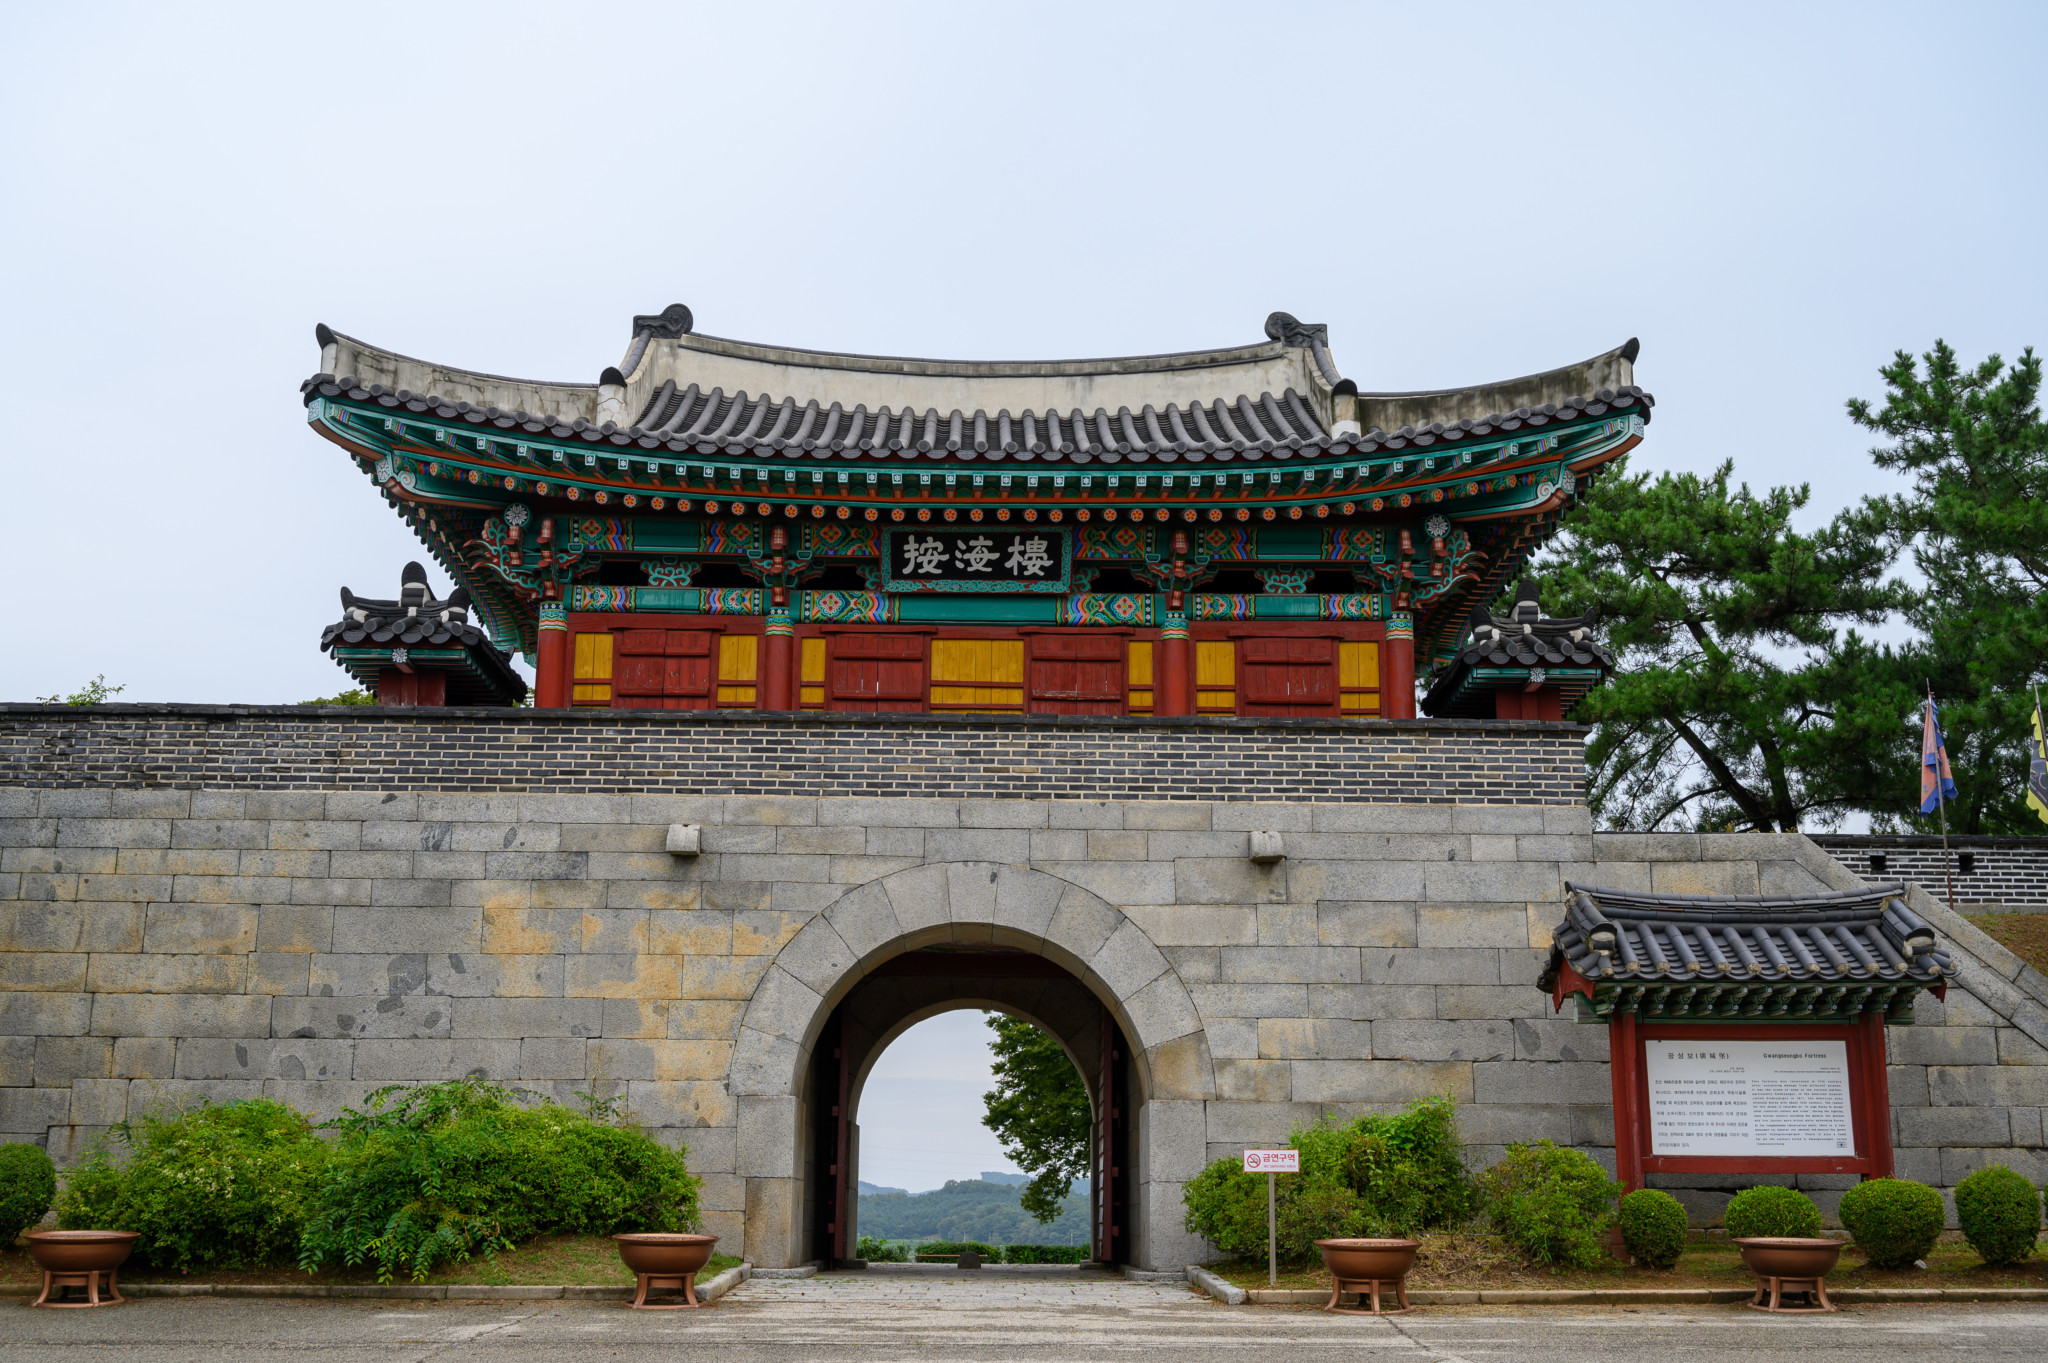 Die Gwangseongbo Festung in Incheon in Südkorea